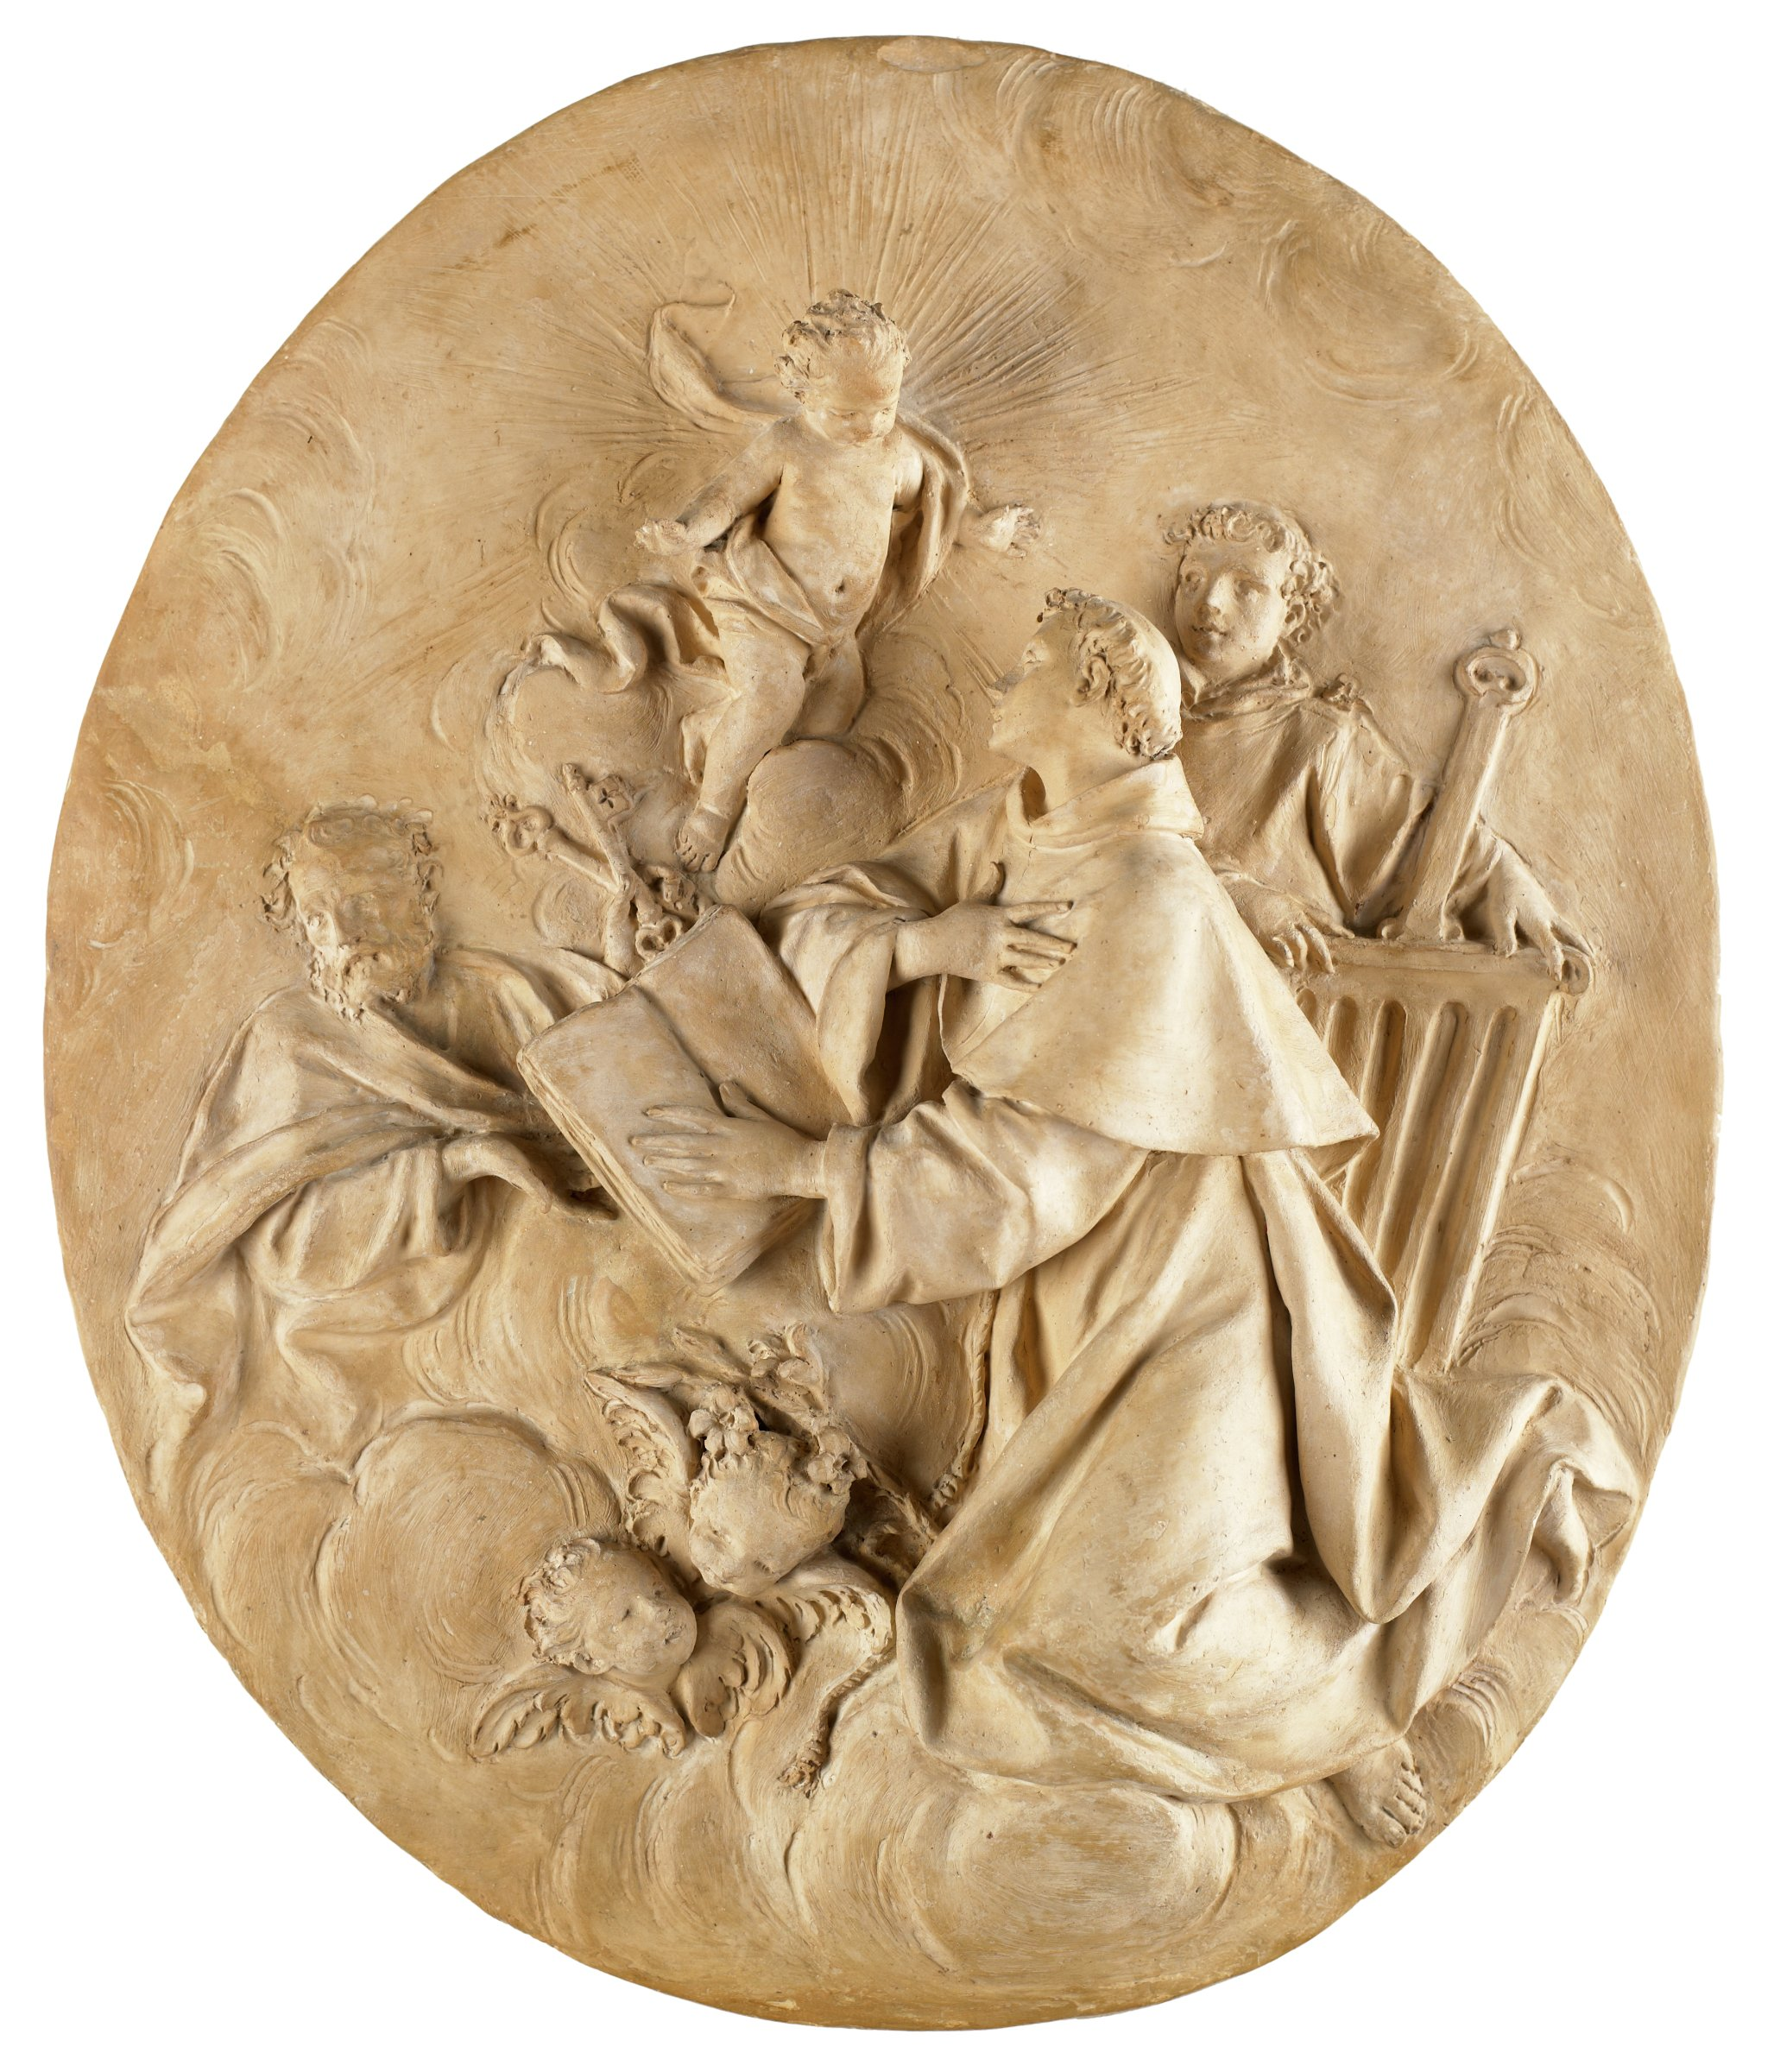 In an oval format: in the center, in highest relief, Saint Anthony of Padua kneels on clouds, with his left hand placed on the open book before him and his right pressed over his heart. He gazes above him at the Christ Child. Incised rays radiate from the Child. Below Anthony's book are lilies, and two cherubim. In front of Anthony, in lower relief, is a half-length St. Peter holding two keys in his left hand. Behind Anthony, also in low relief, is St. Lawrence with both hands resting on the gridiron in front of him.